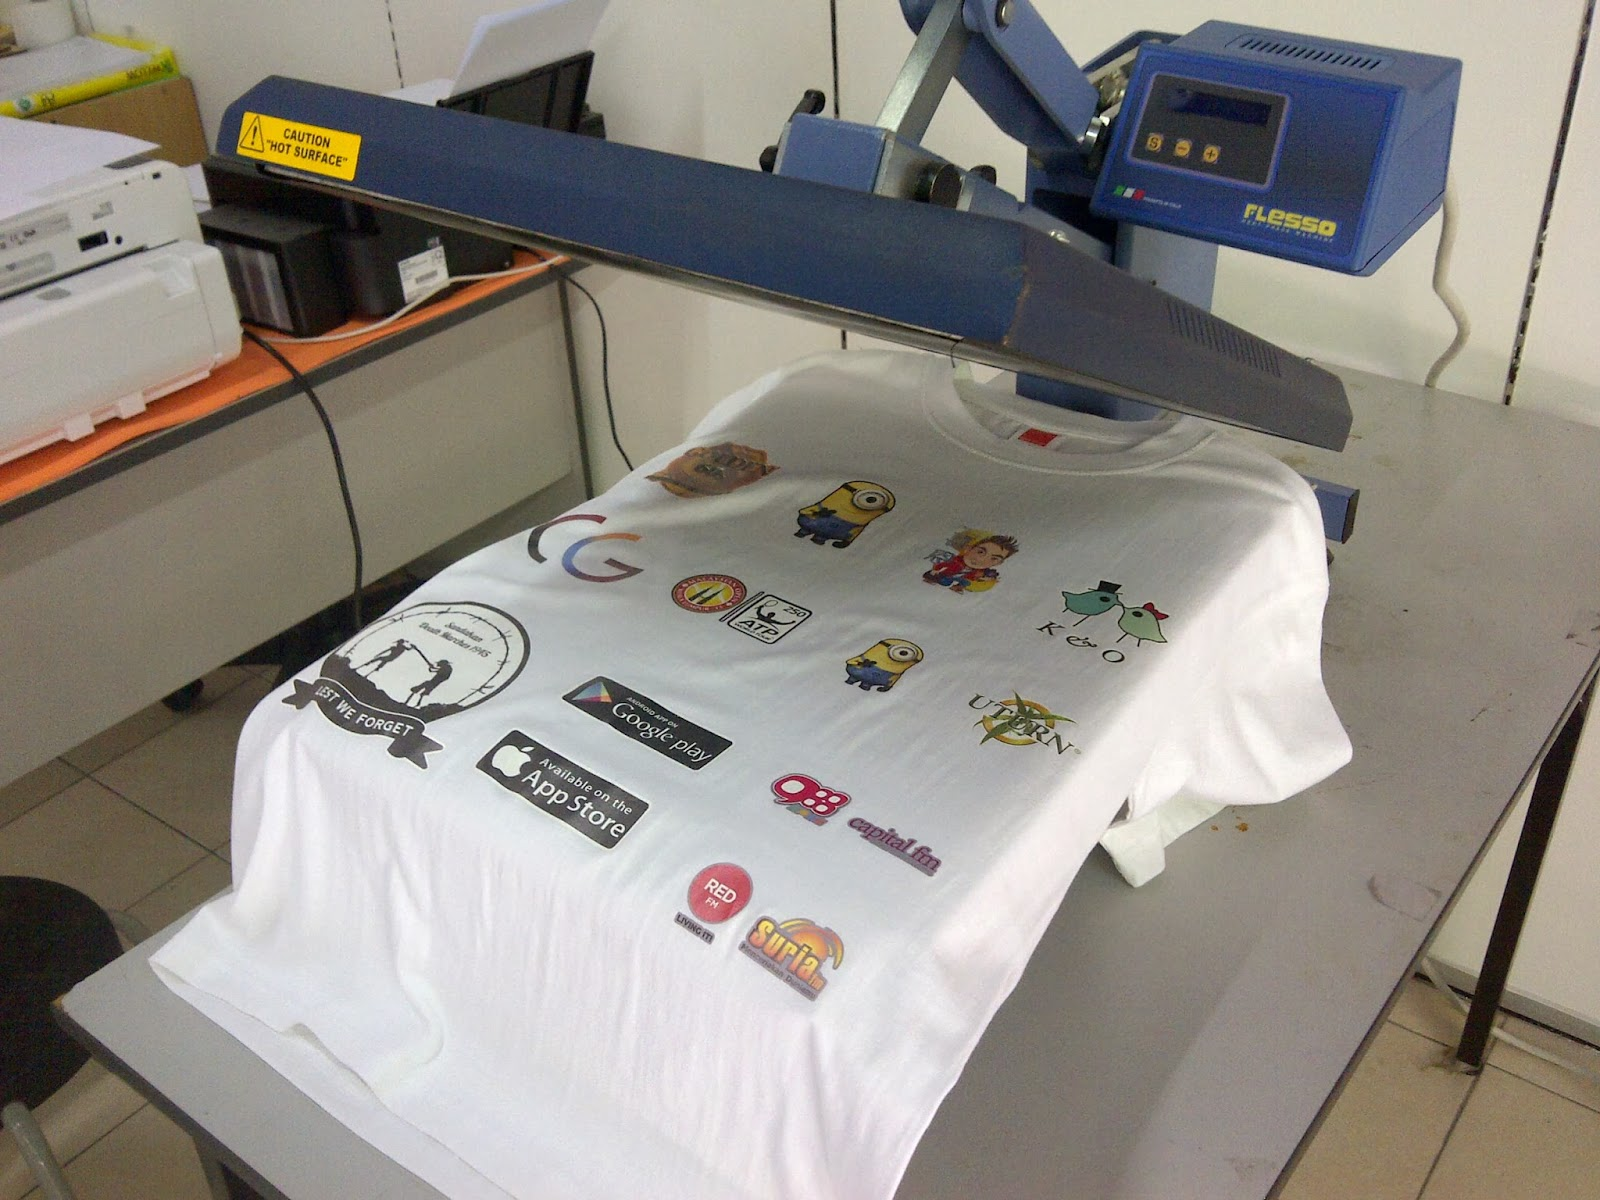 Tshirt printing mug printing in kl button badge heat for How to make t shirt printing